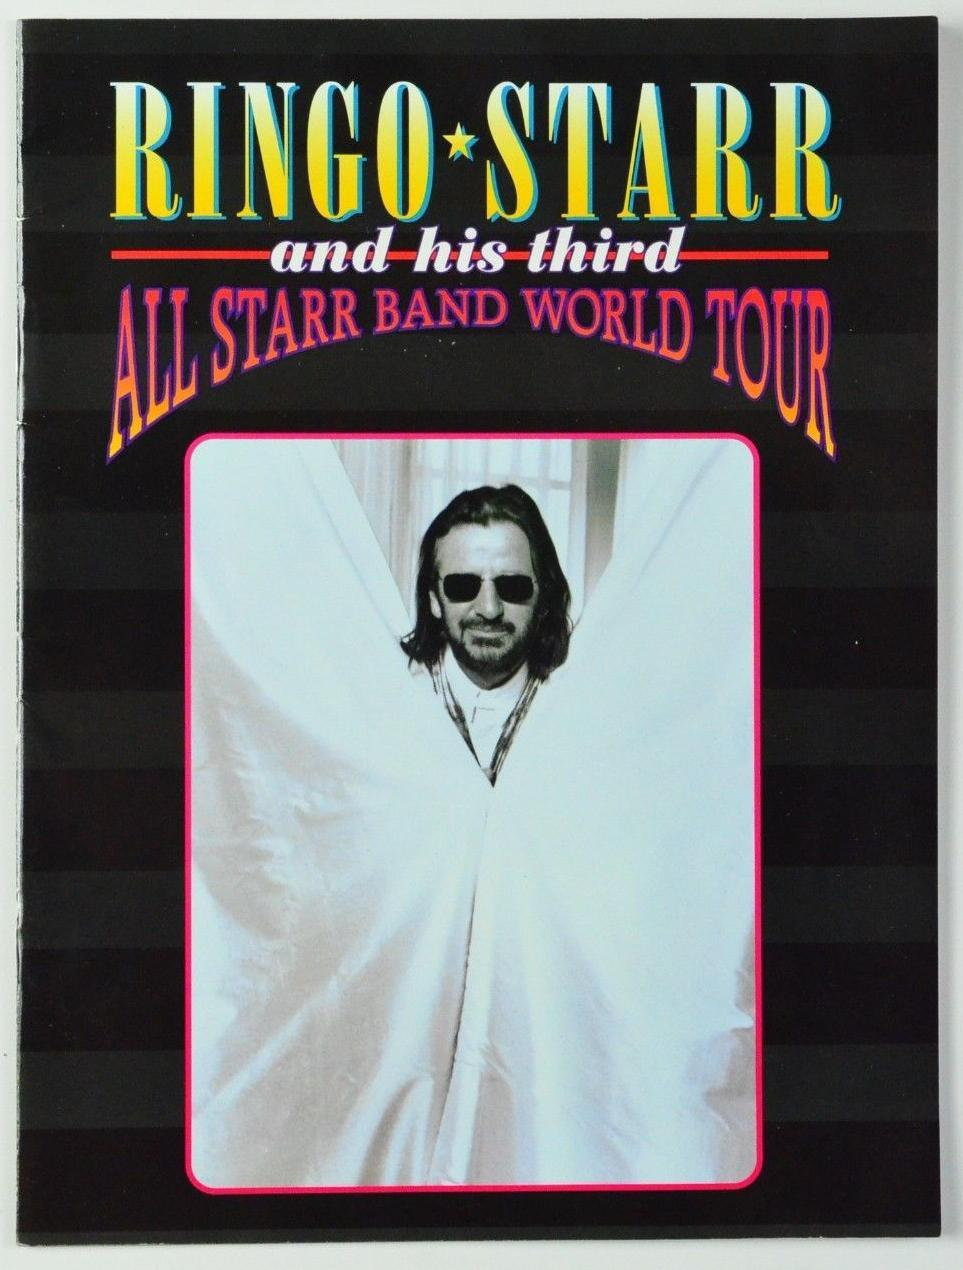 1995 Ringo Starr And His Third All Starr Band World Tour Concert Book Program